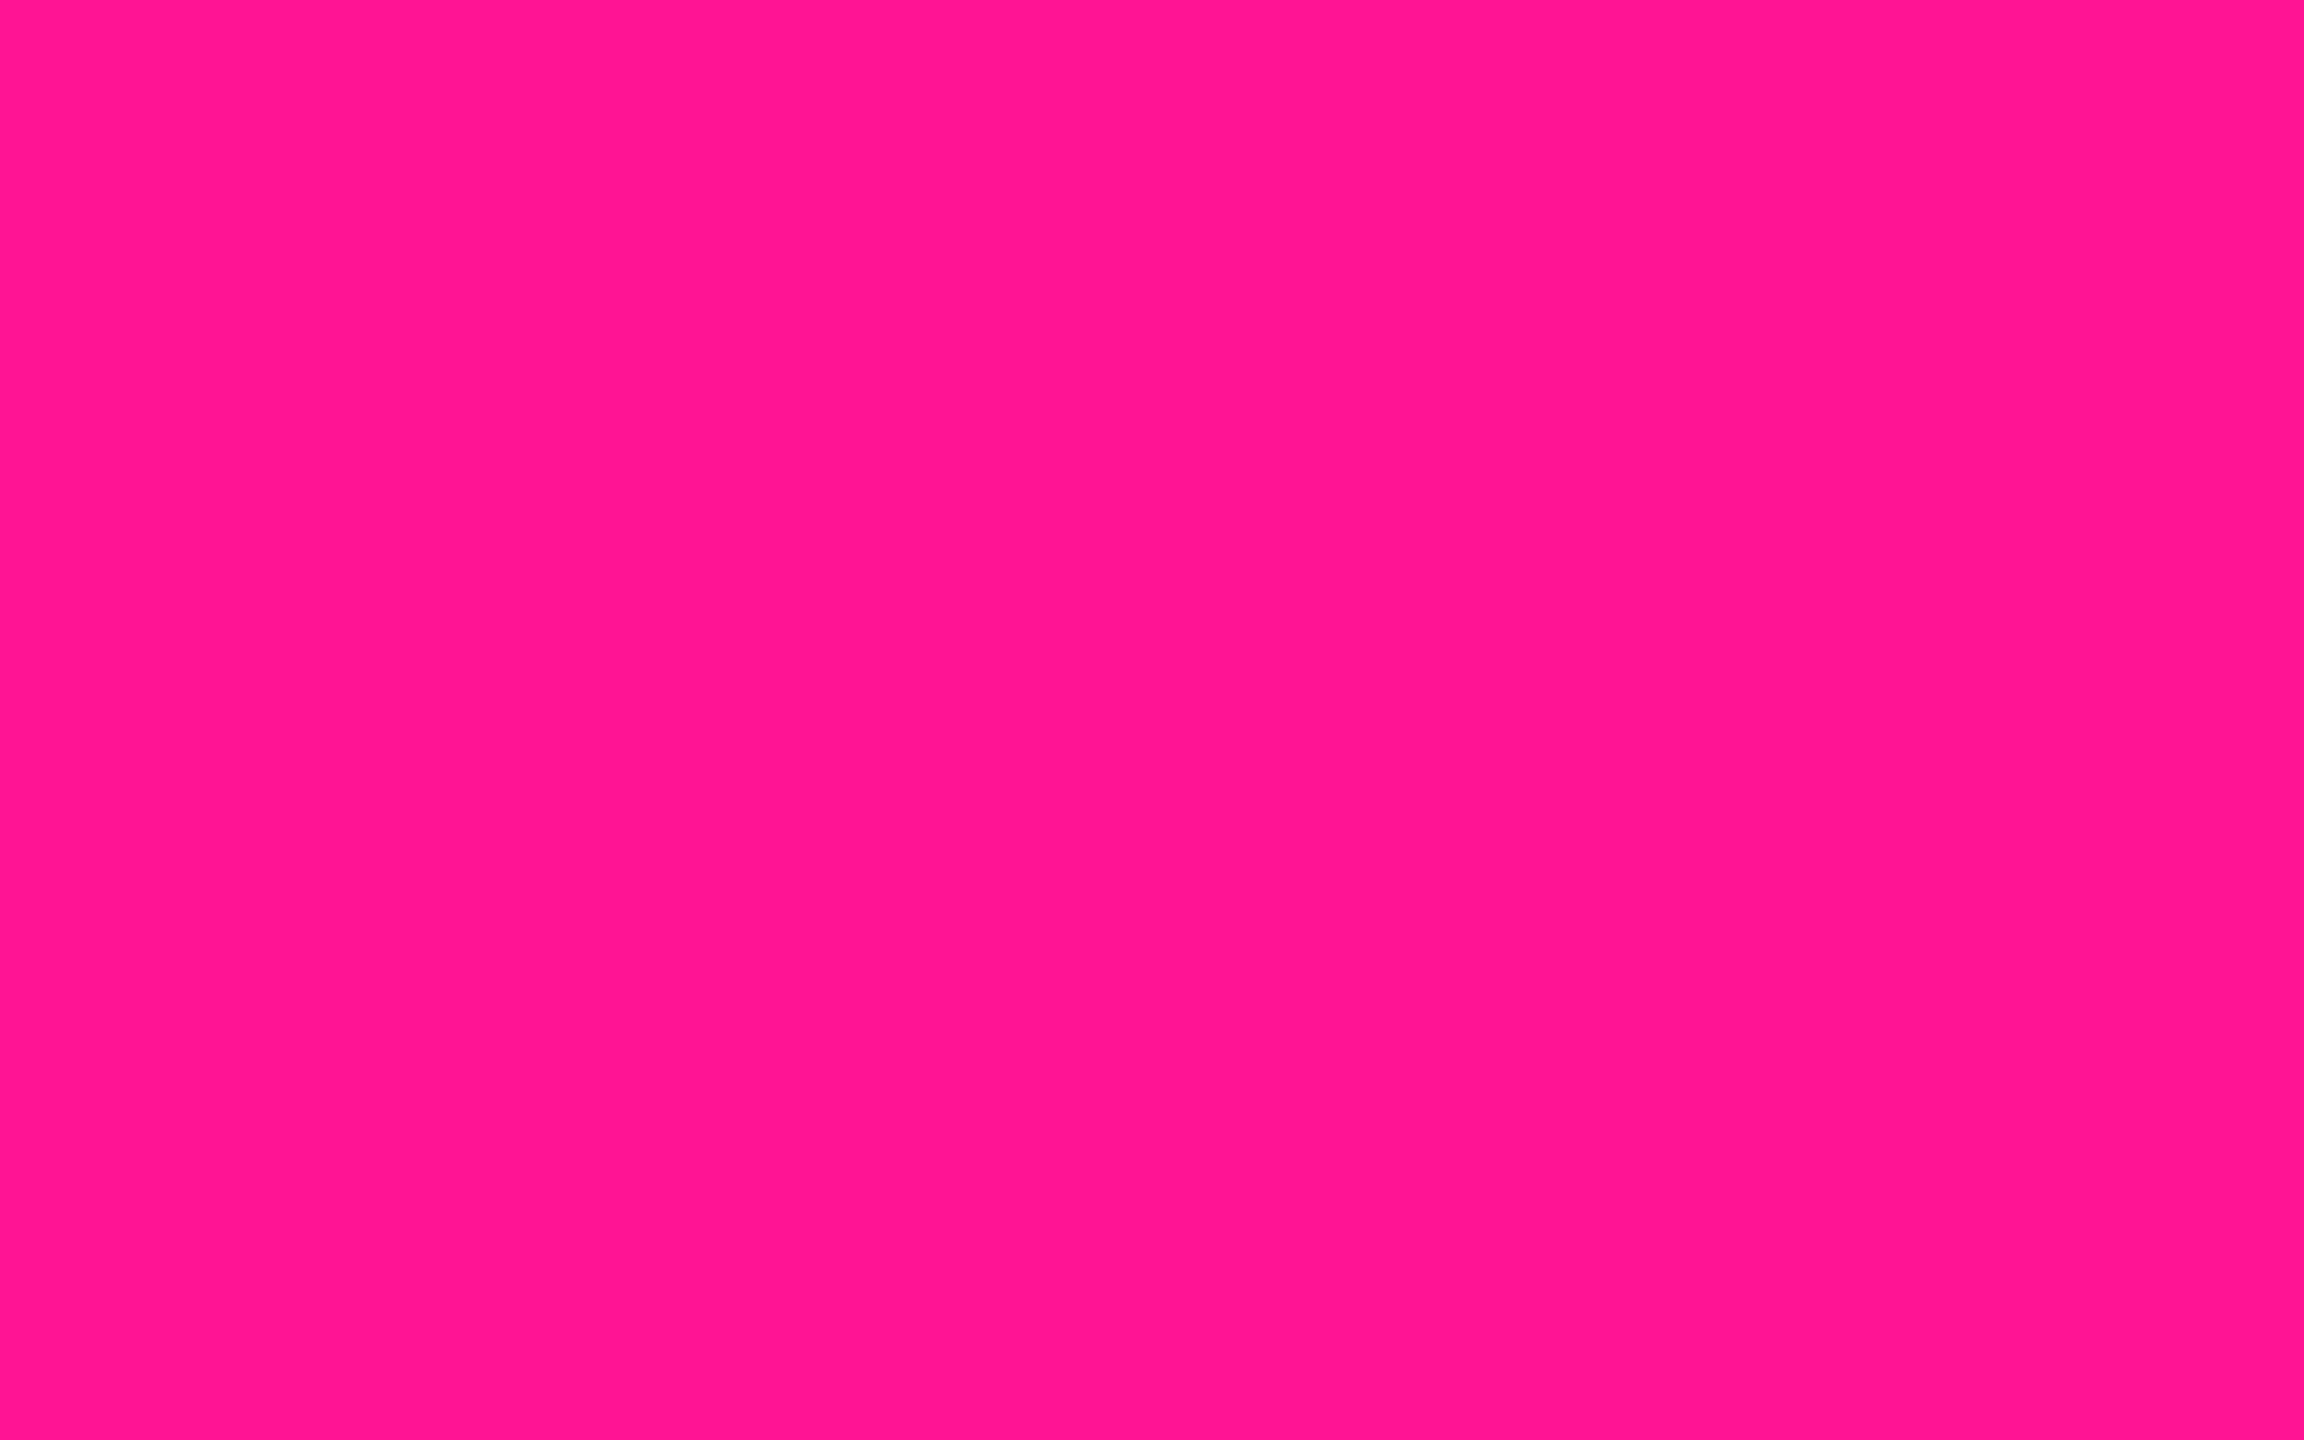 2304x1440 Fluorescent Pink Solid Color Background